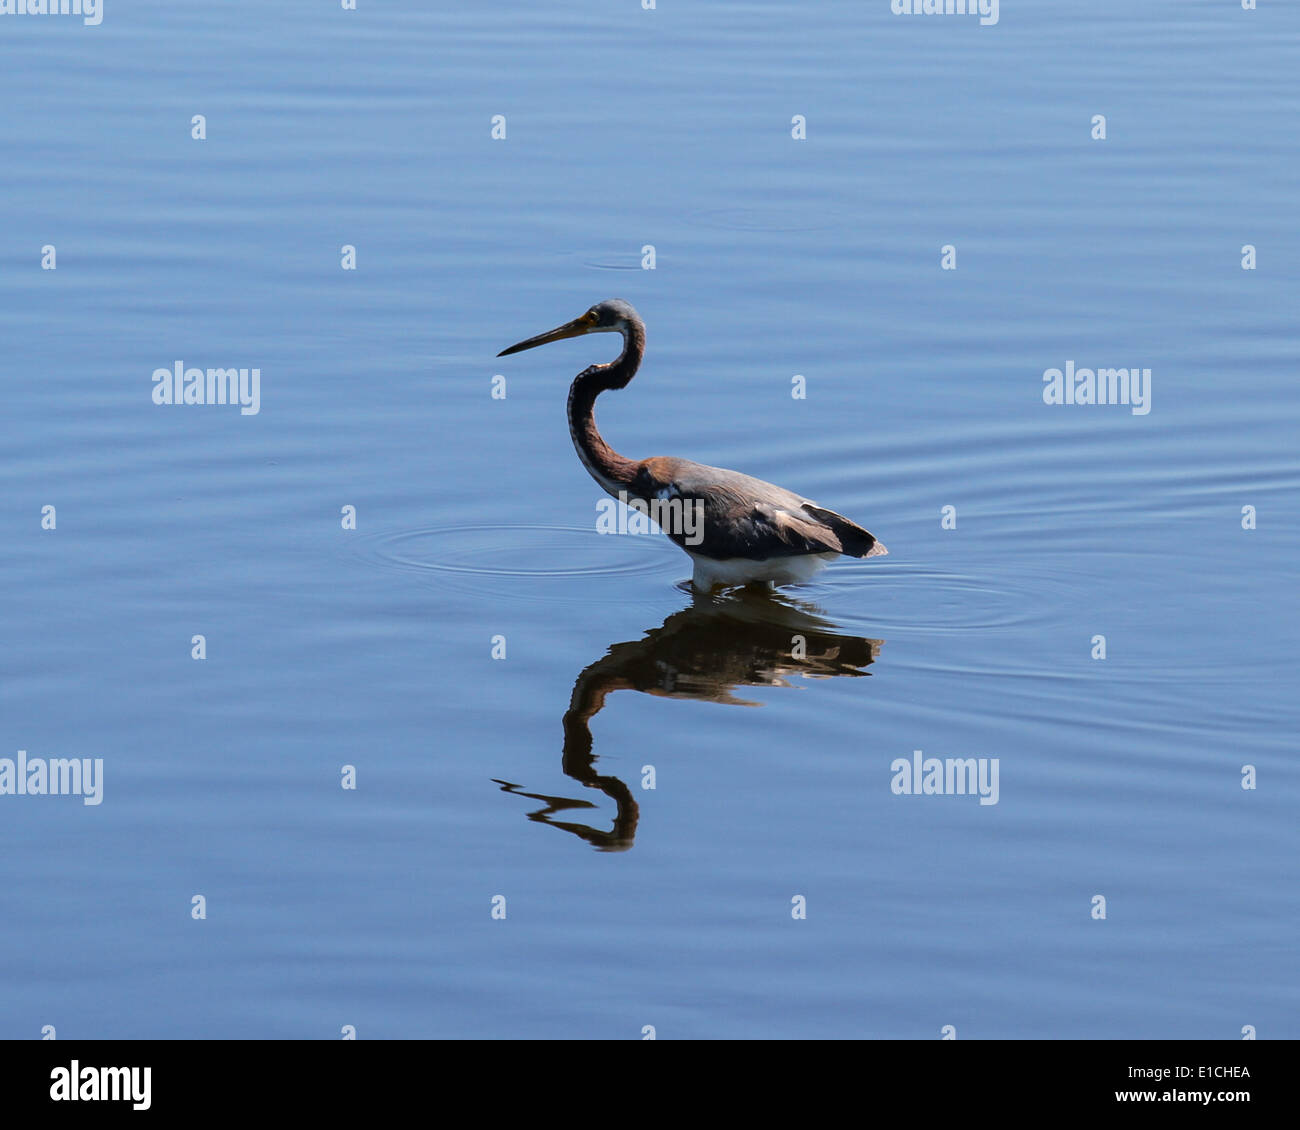 Tricolored Heron wading in shallows Stock Photo